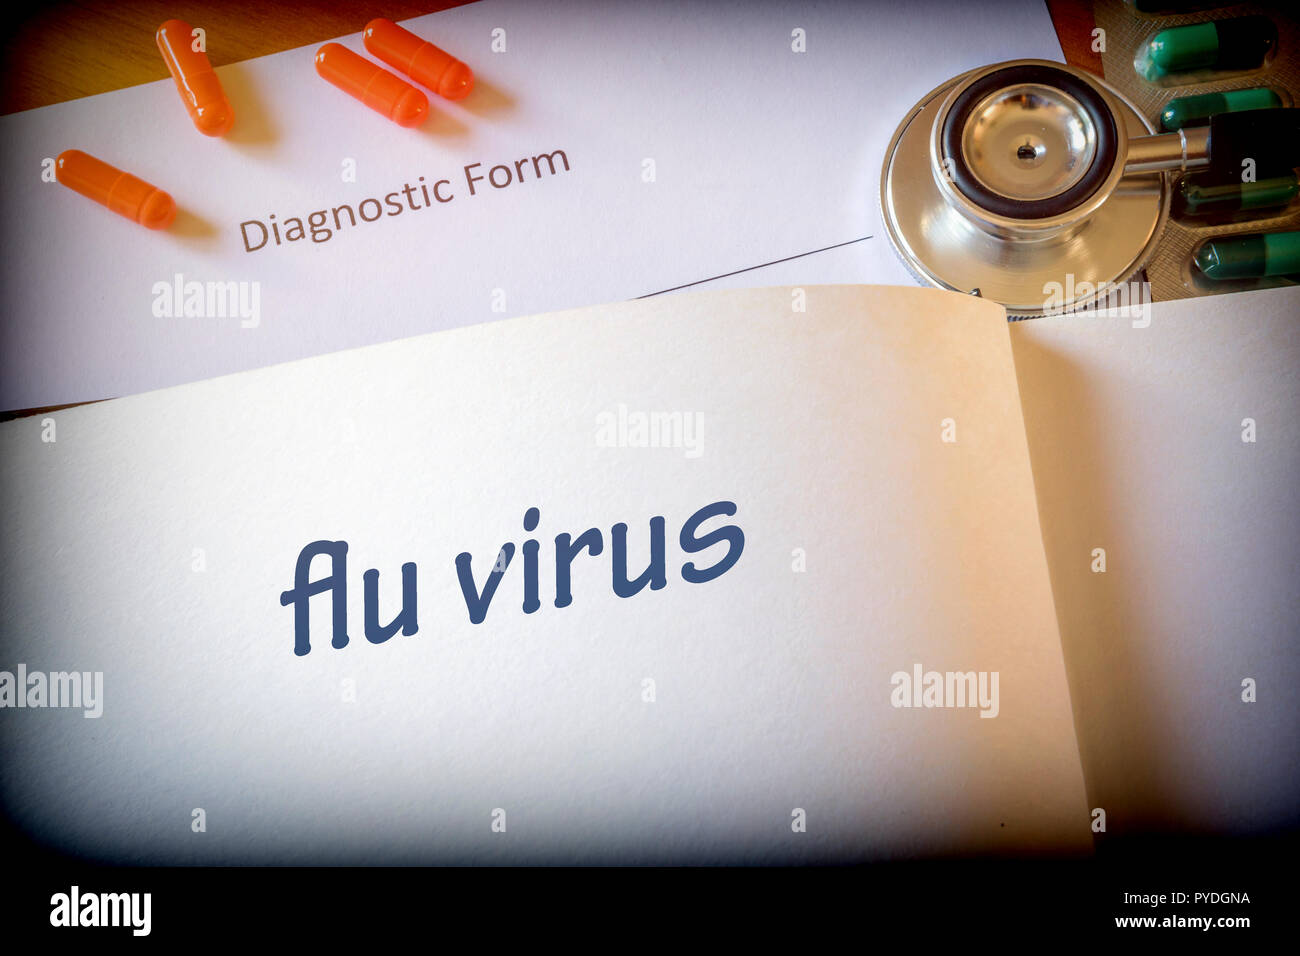 Diagnosis flu virus written in the diagnostic form and pills - Stock Image